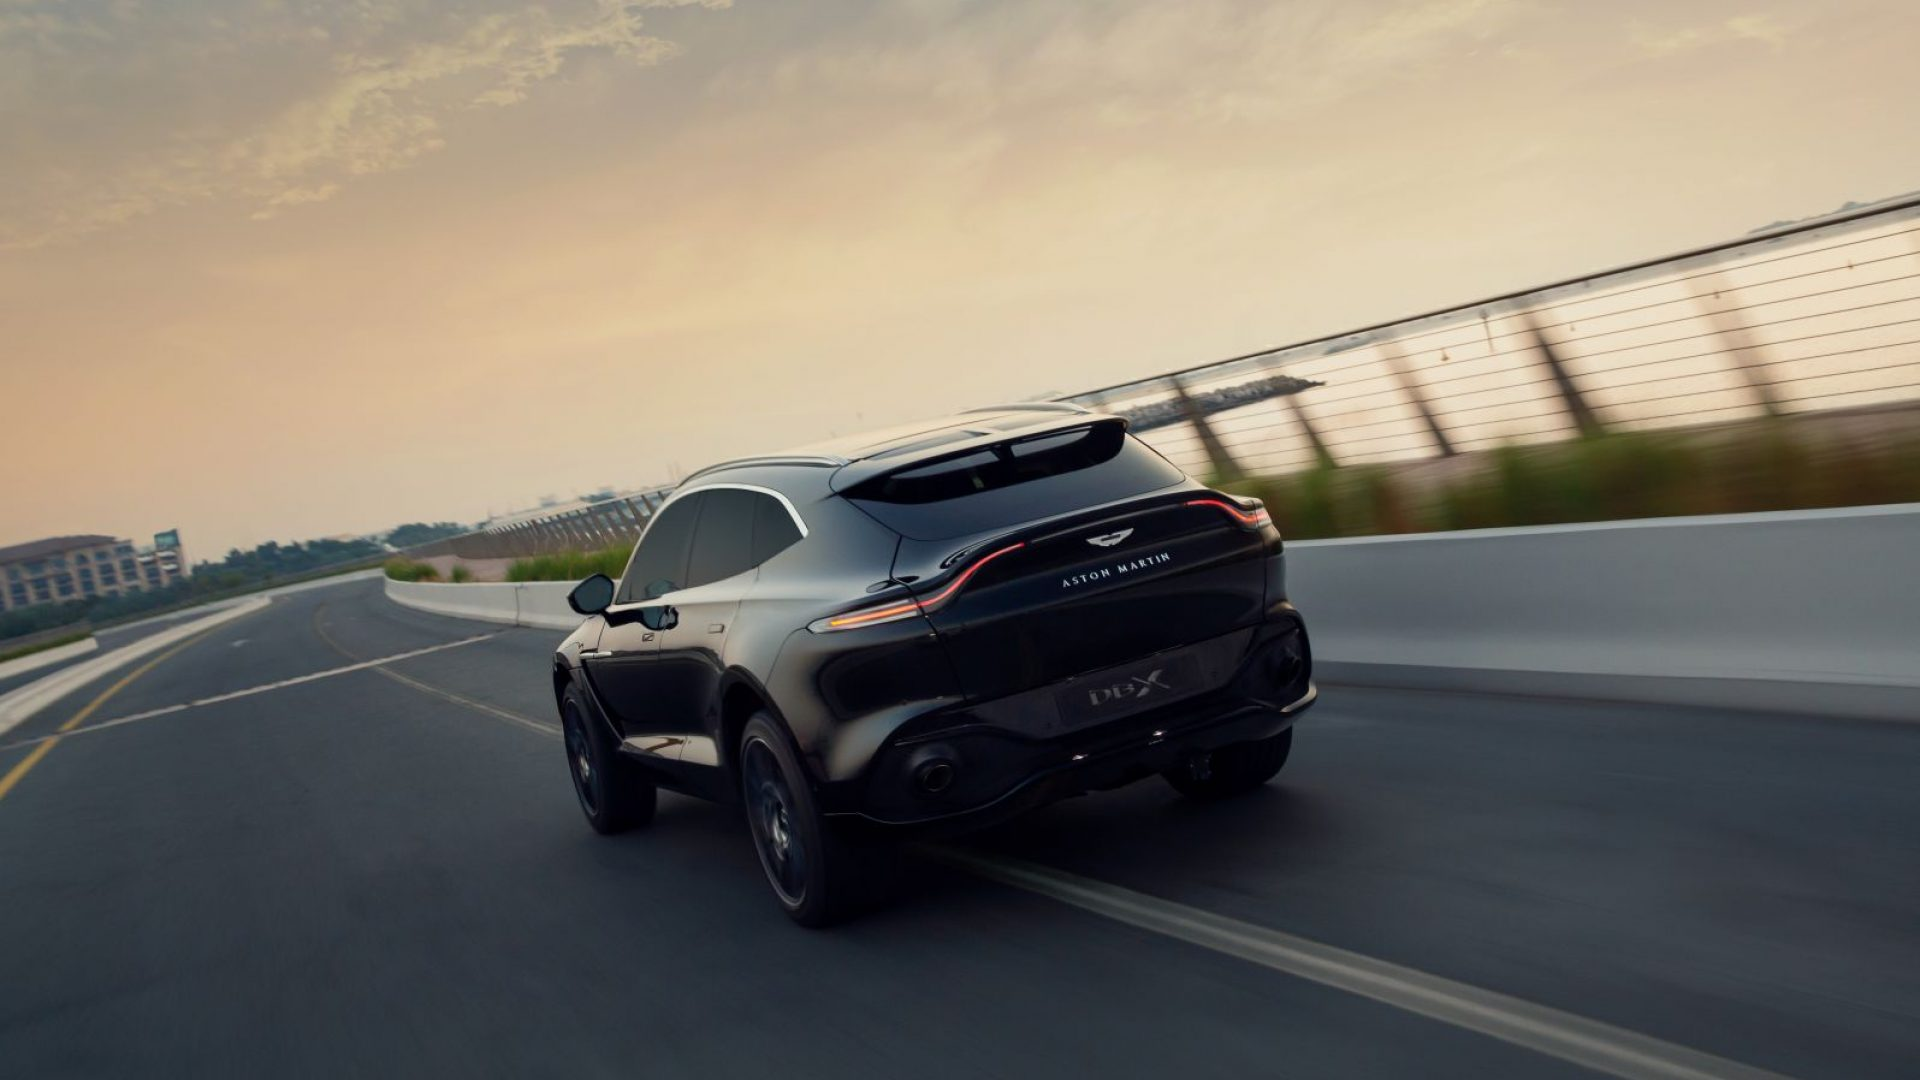 aston-martin-dbx-in-the-middle-east-6-jpg.